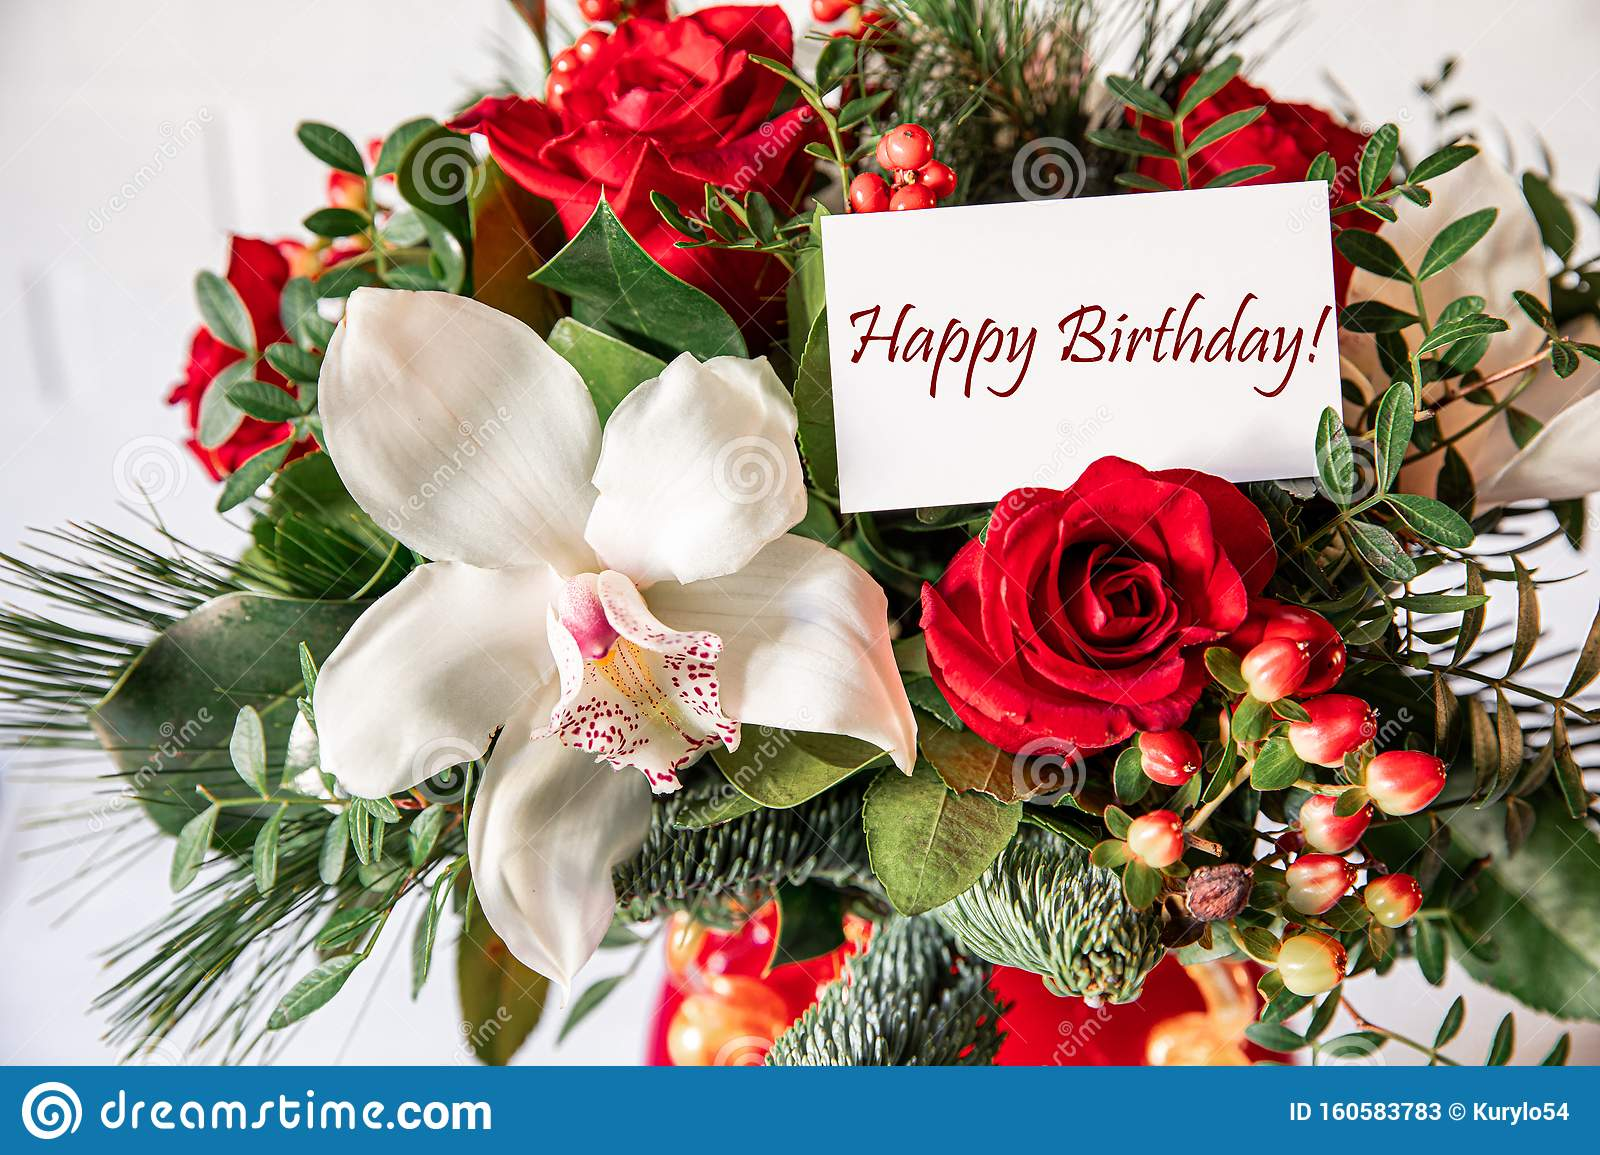 Beautiful Flower Arrangement Of White Orchid Red Roses Natural Spruce Branches With Card Text Happy Birthday Stock Image Image Of Congratulations Congrats 160583783